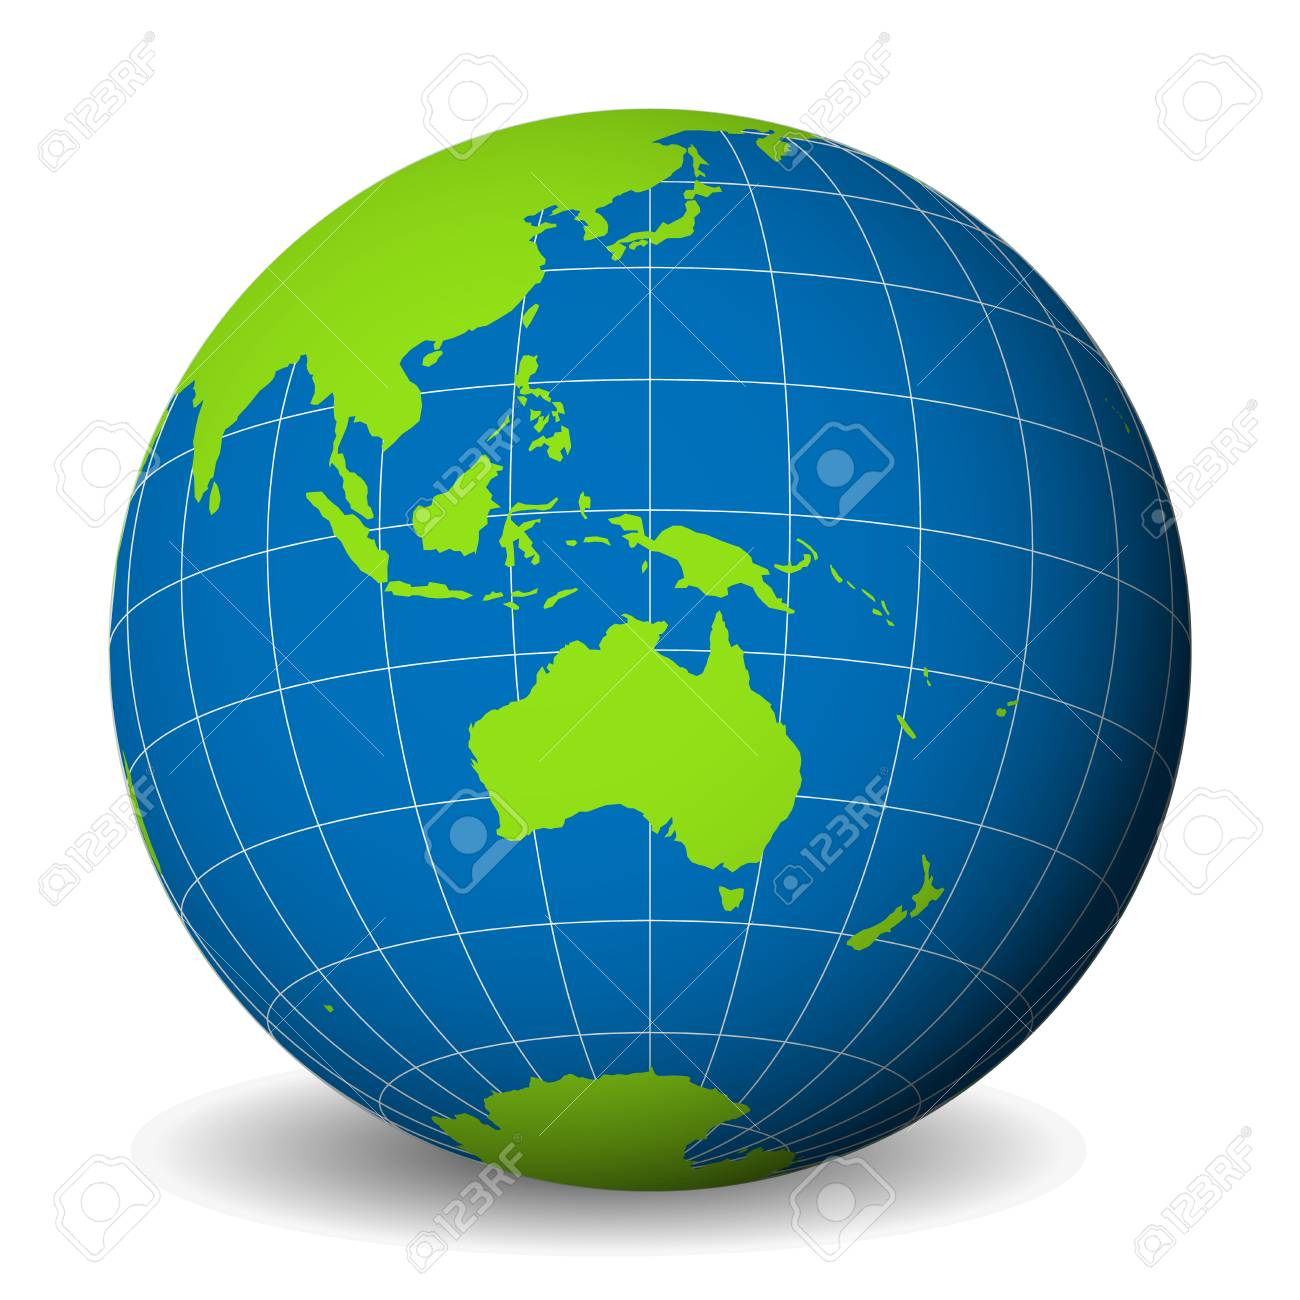 Australia In World Map.Earth Globe With Green World Map And Blue Seas And Oceans Focused